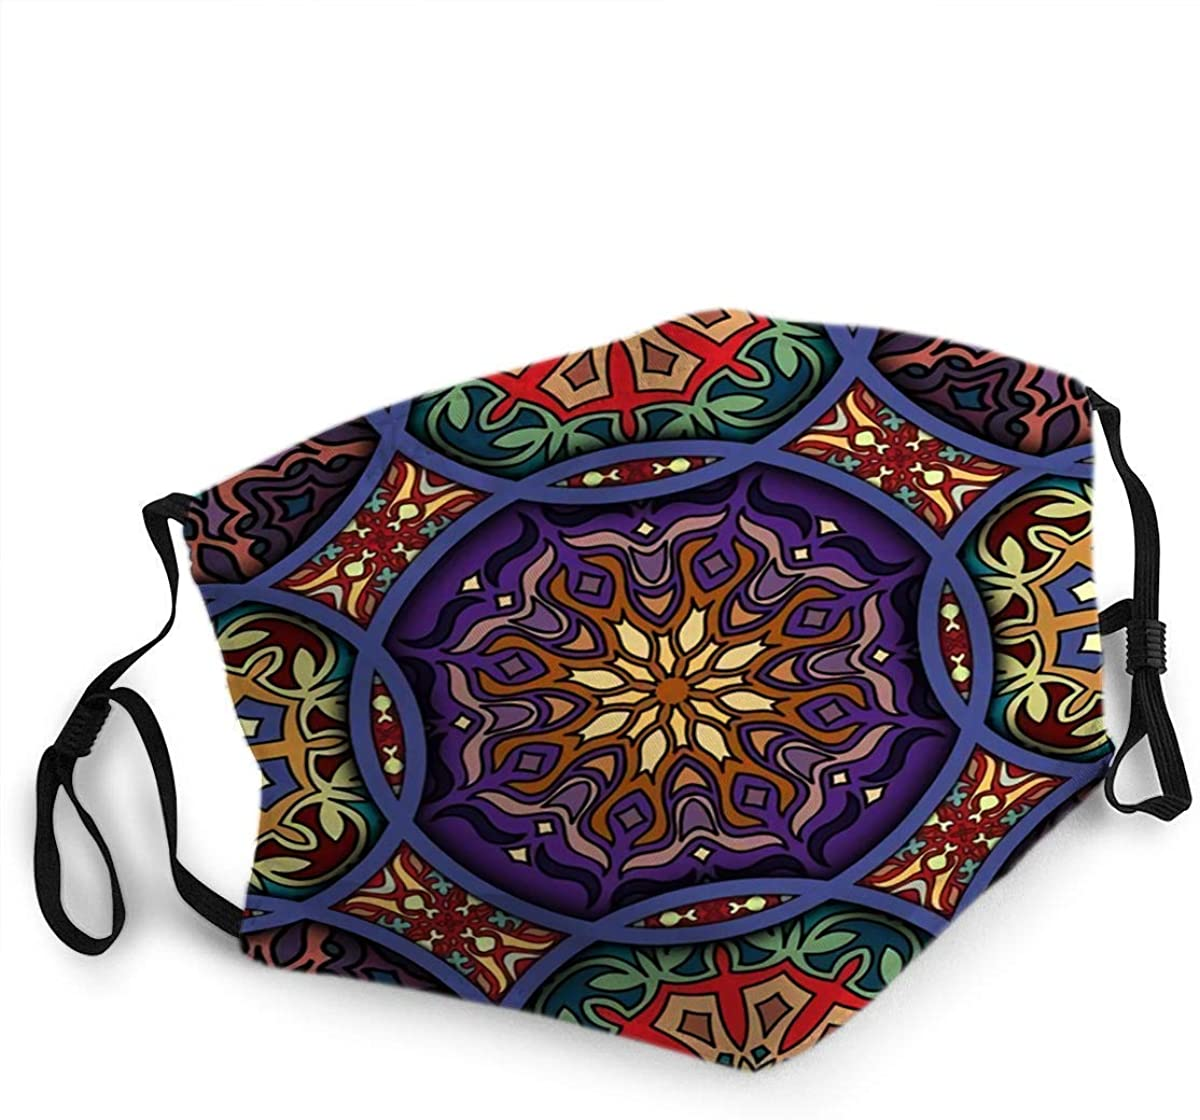 BOKUTT Mouth Mask Reusable Face Covers Face Scarf,Colorful Vintage With Floral And Mandala Elements Face Scarf,Elegant Antidust Mouth Scarf,20X15Cm Printed Breathable-able Facial mask